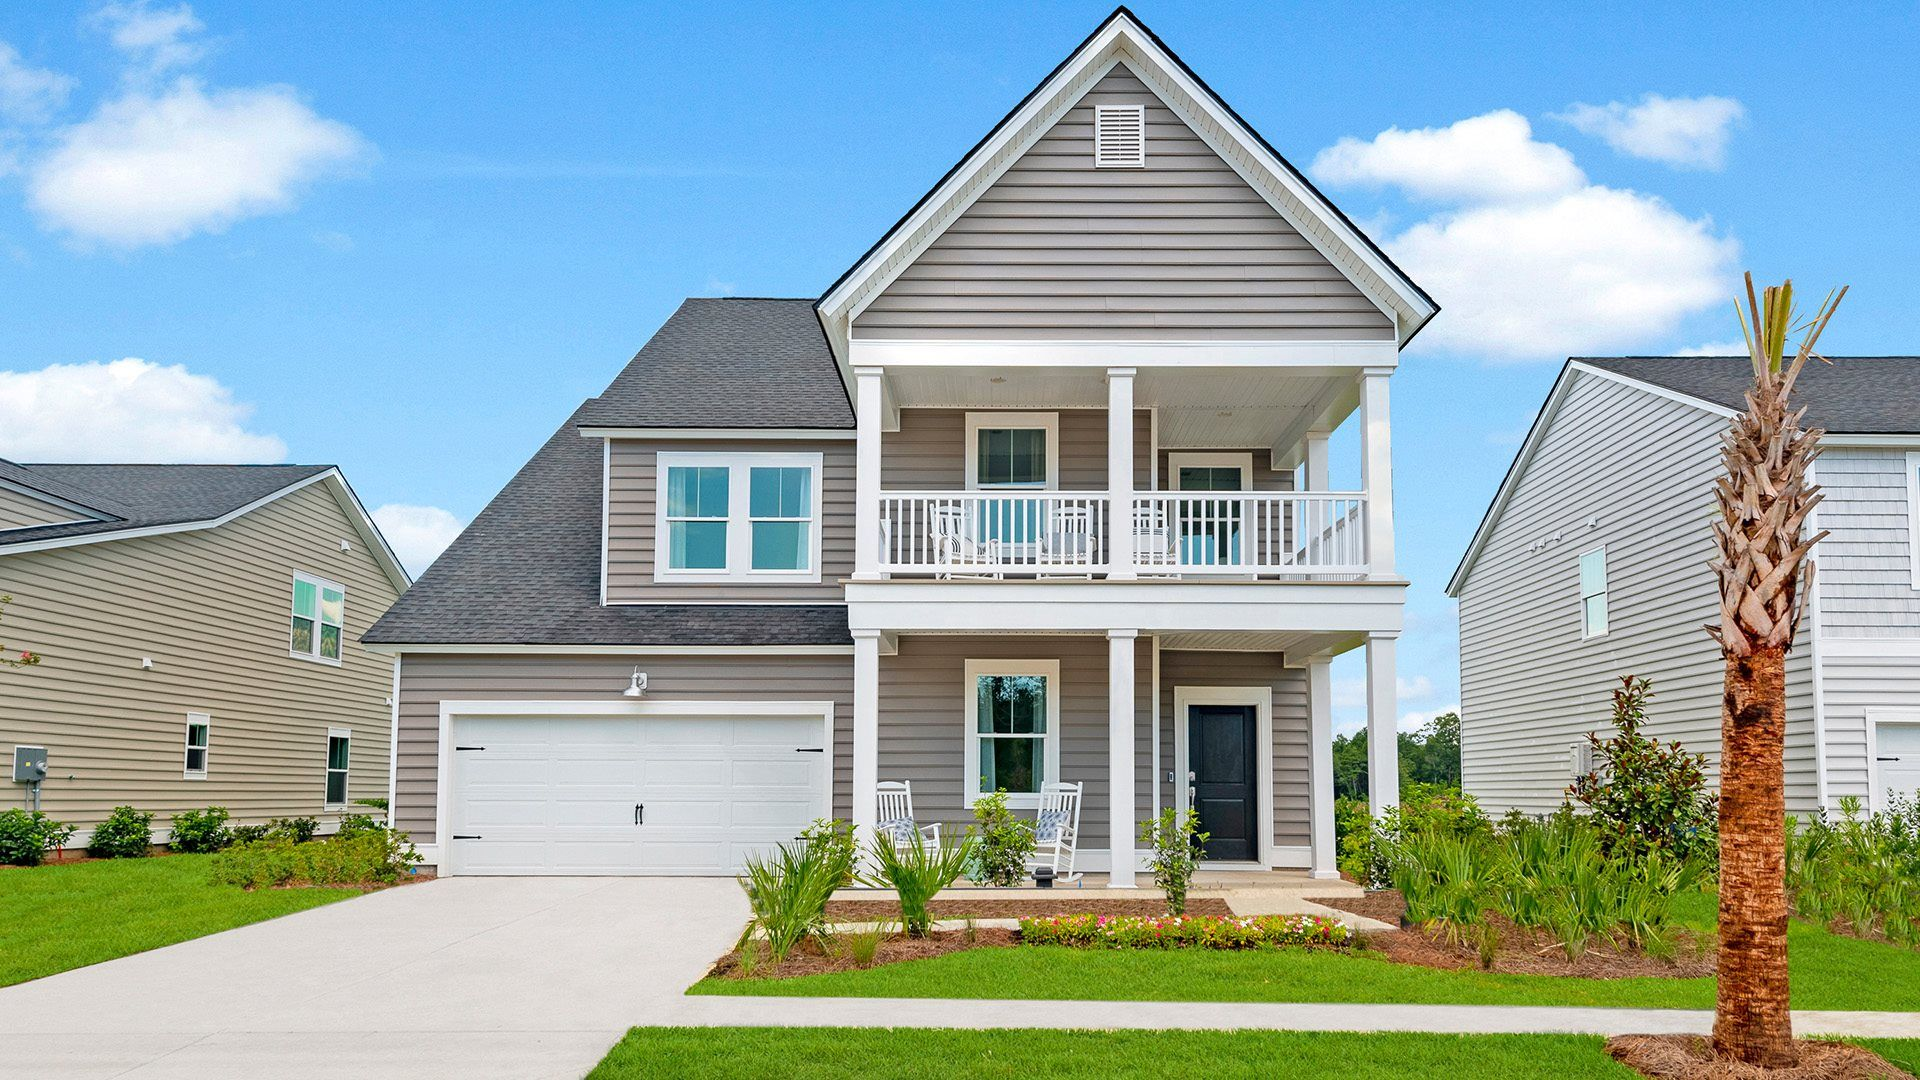 The Fanning Model Home